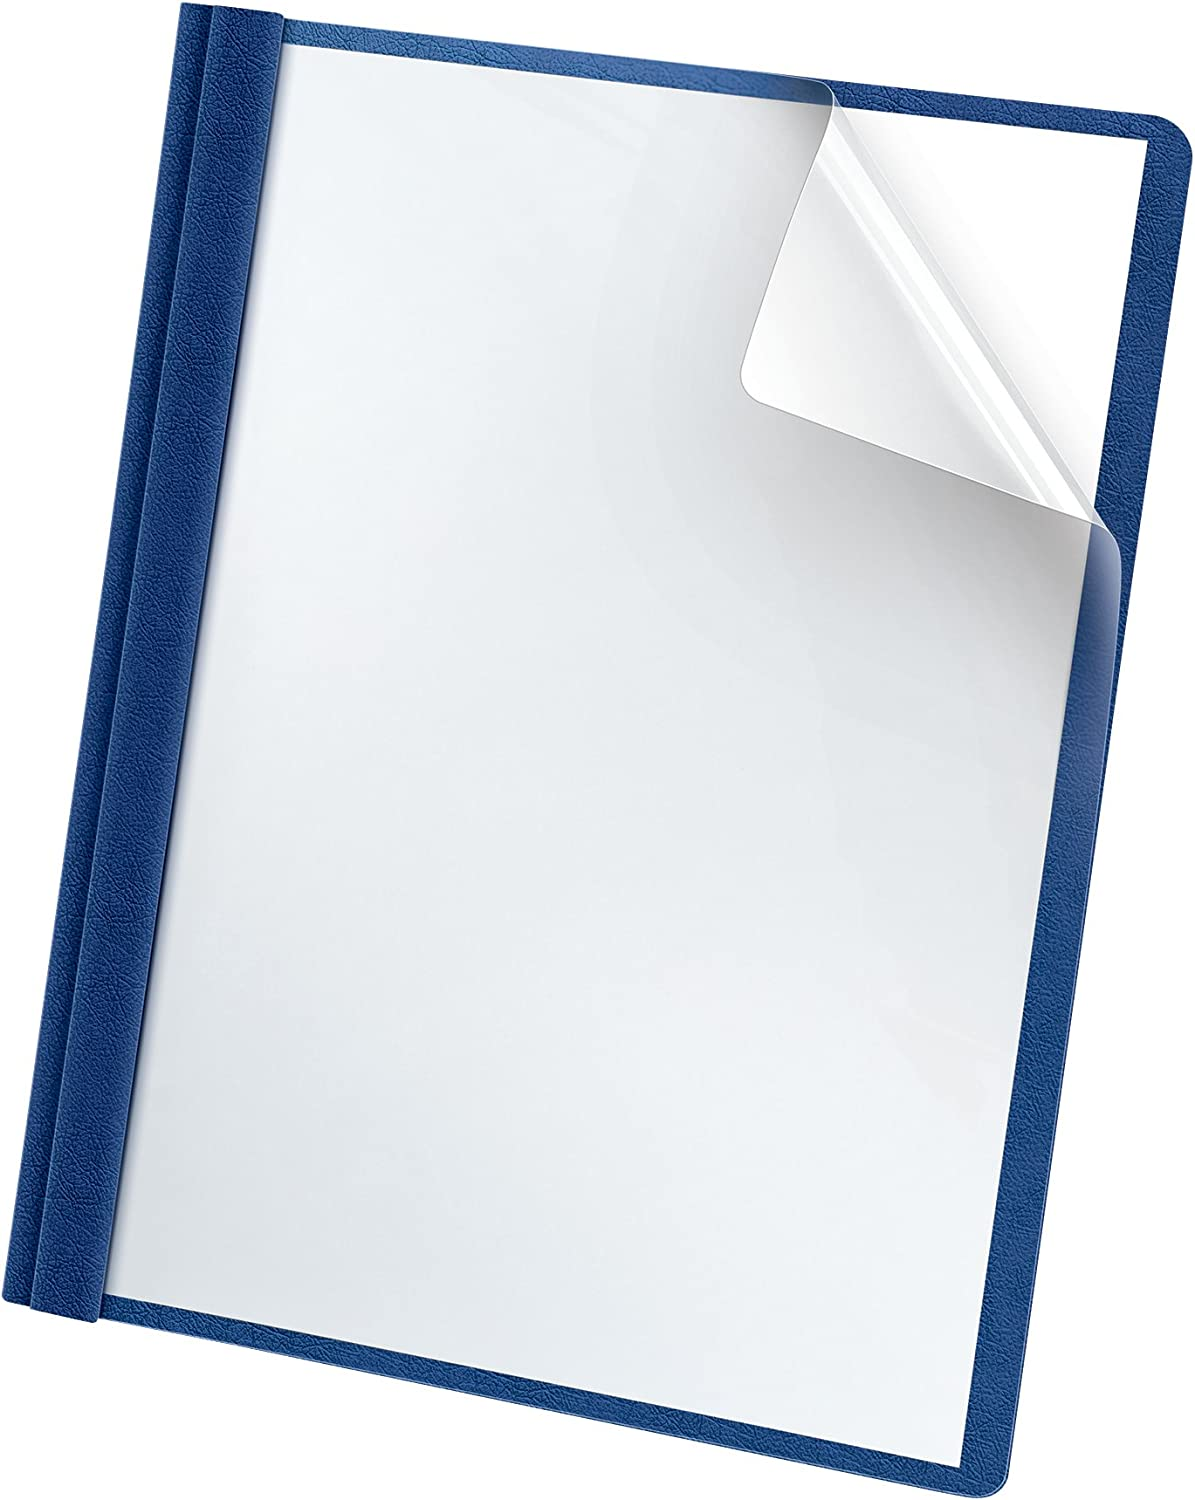 Oxford Premium Clear Front Report Covers, Blue, Letter Size, 25 per box (58801EE)